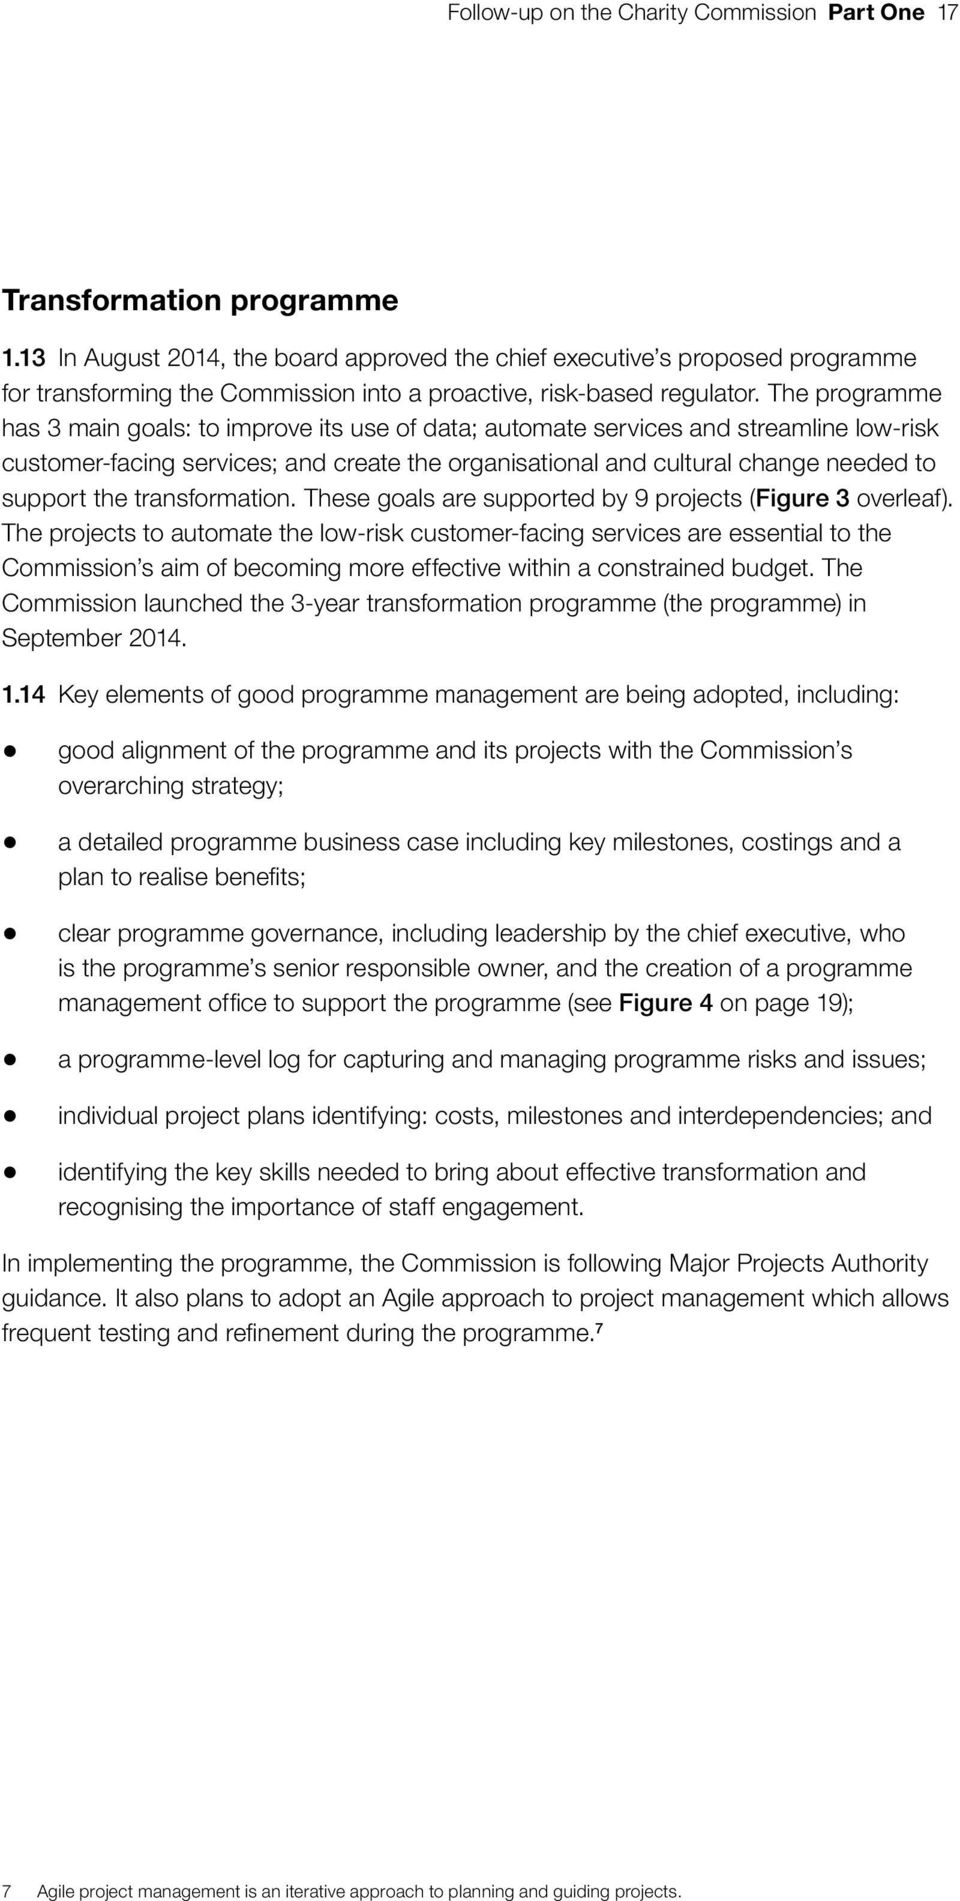 The programme has 3 main goals: to improve its use of data; automate services and streamline low-risk customer-facing services; and create the organisational and cultural change needed to support the